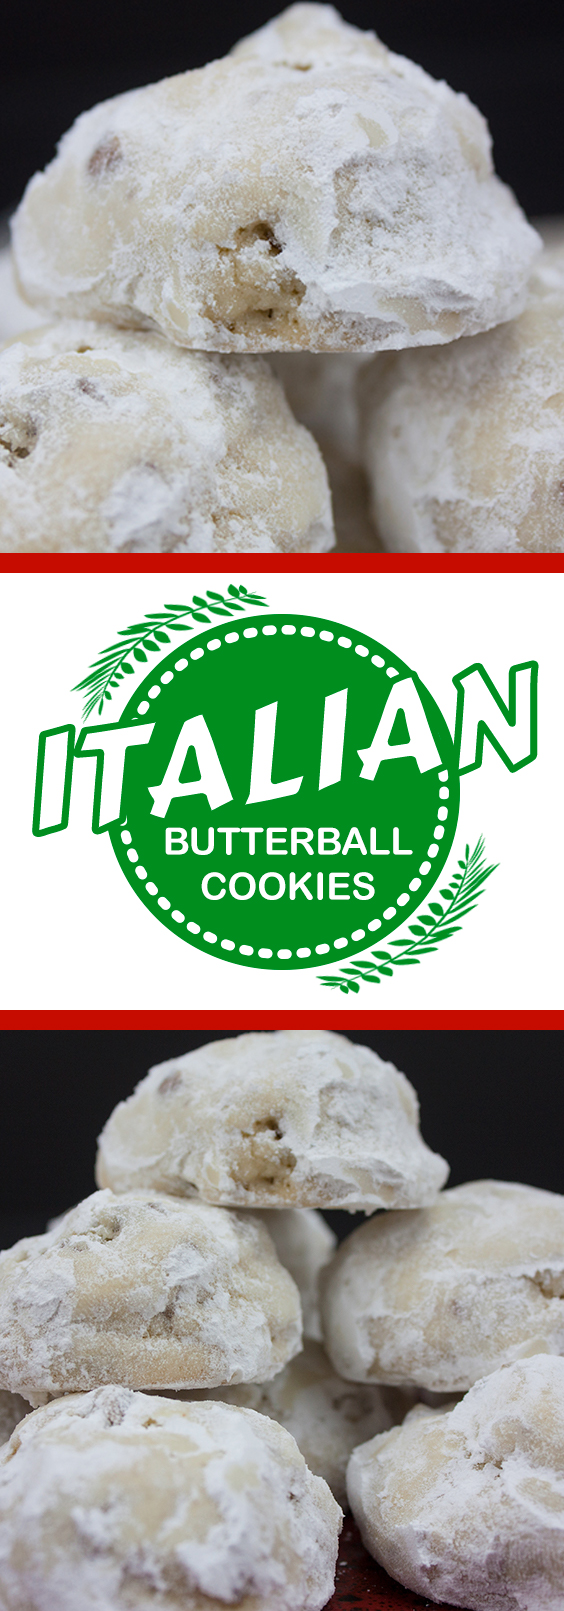 Italian Butterball Cookies - Tender, melt in your mouth deliciousness! #dessert #recipes # easy #christmas #holiday #holidays